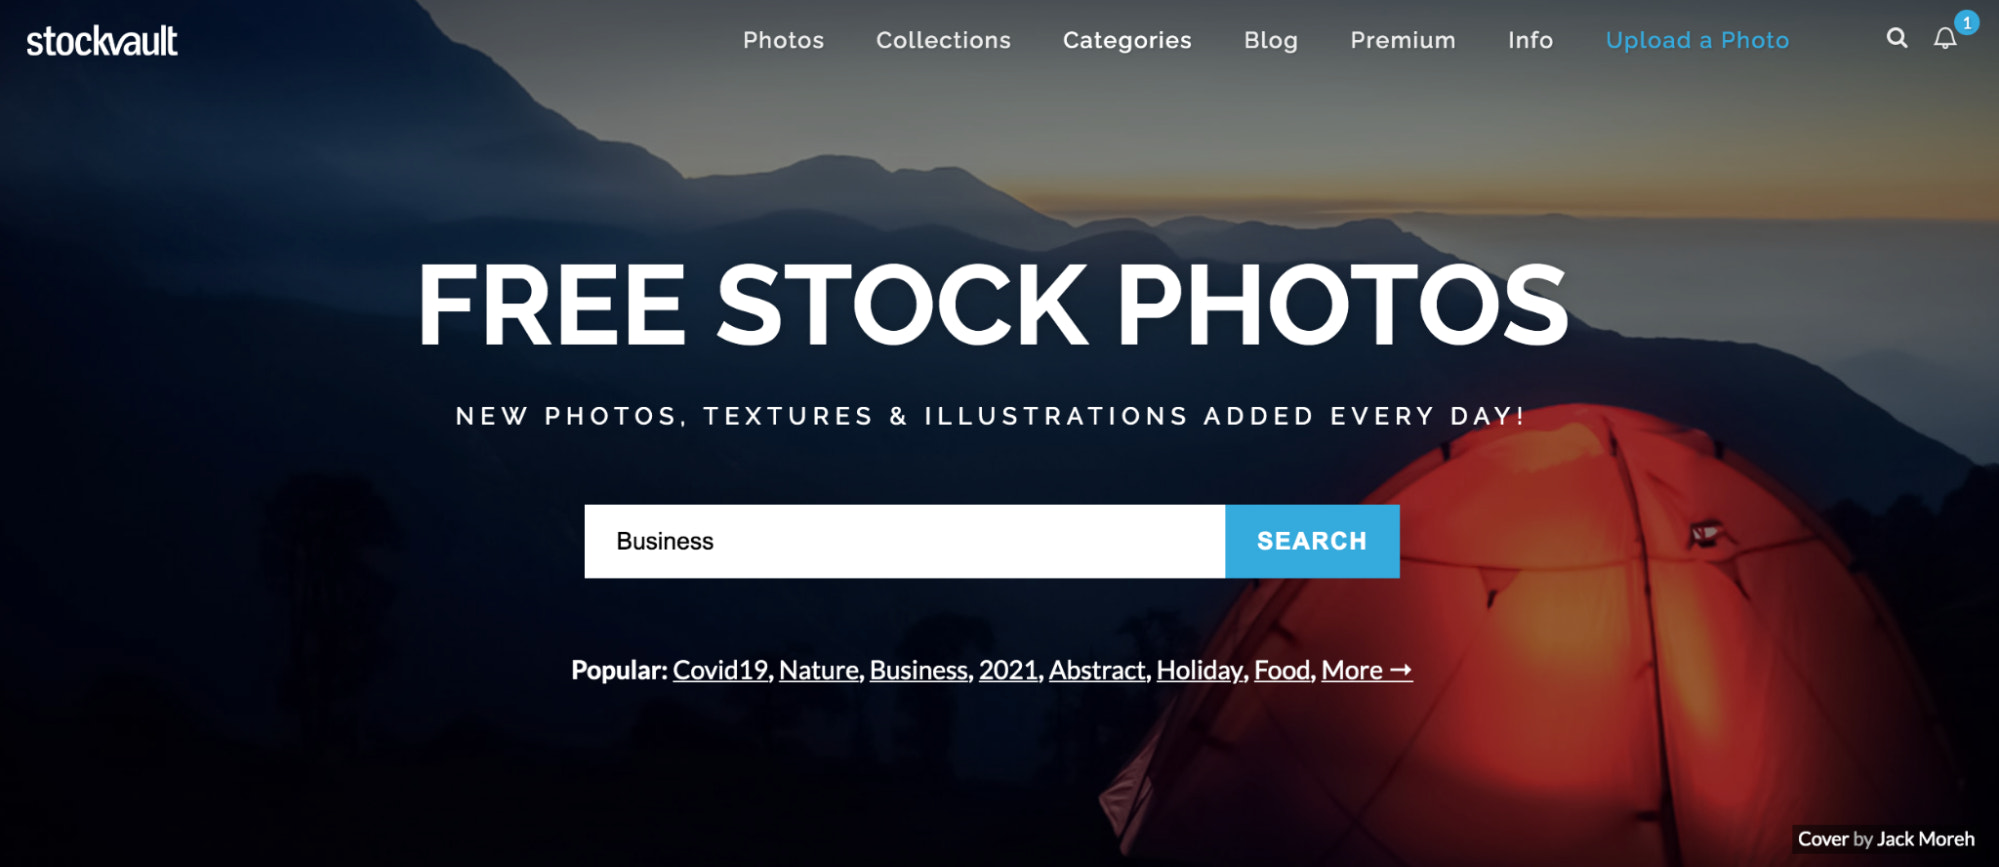 stockvault free stock photo site homepage